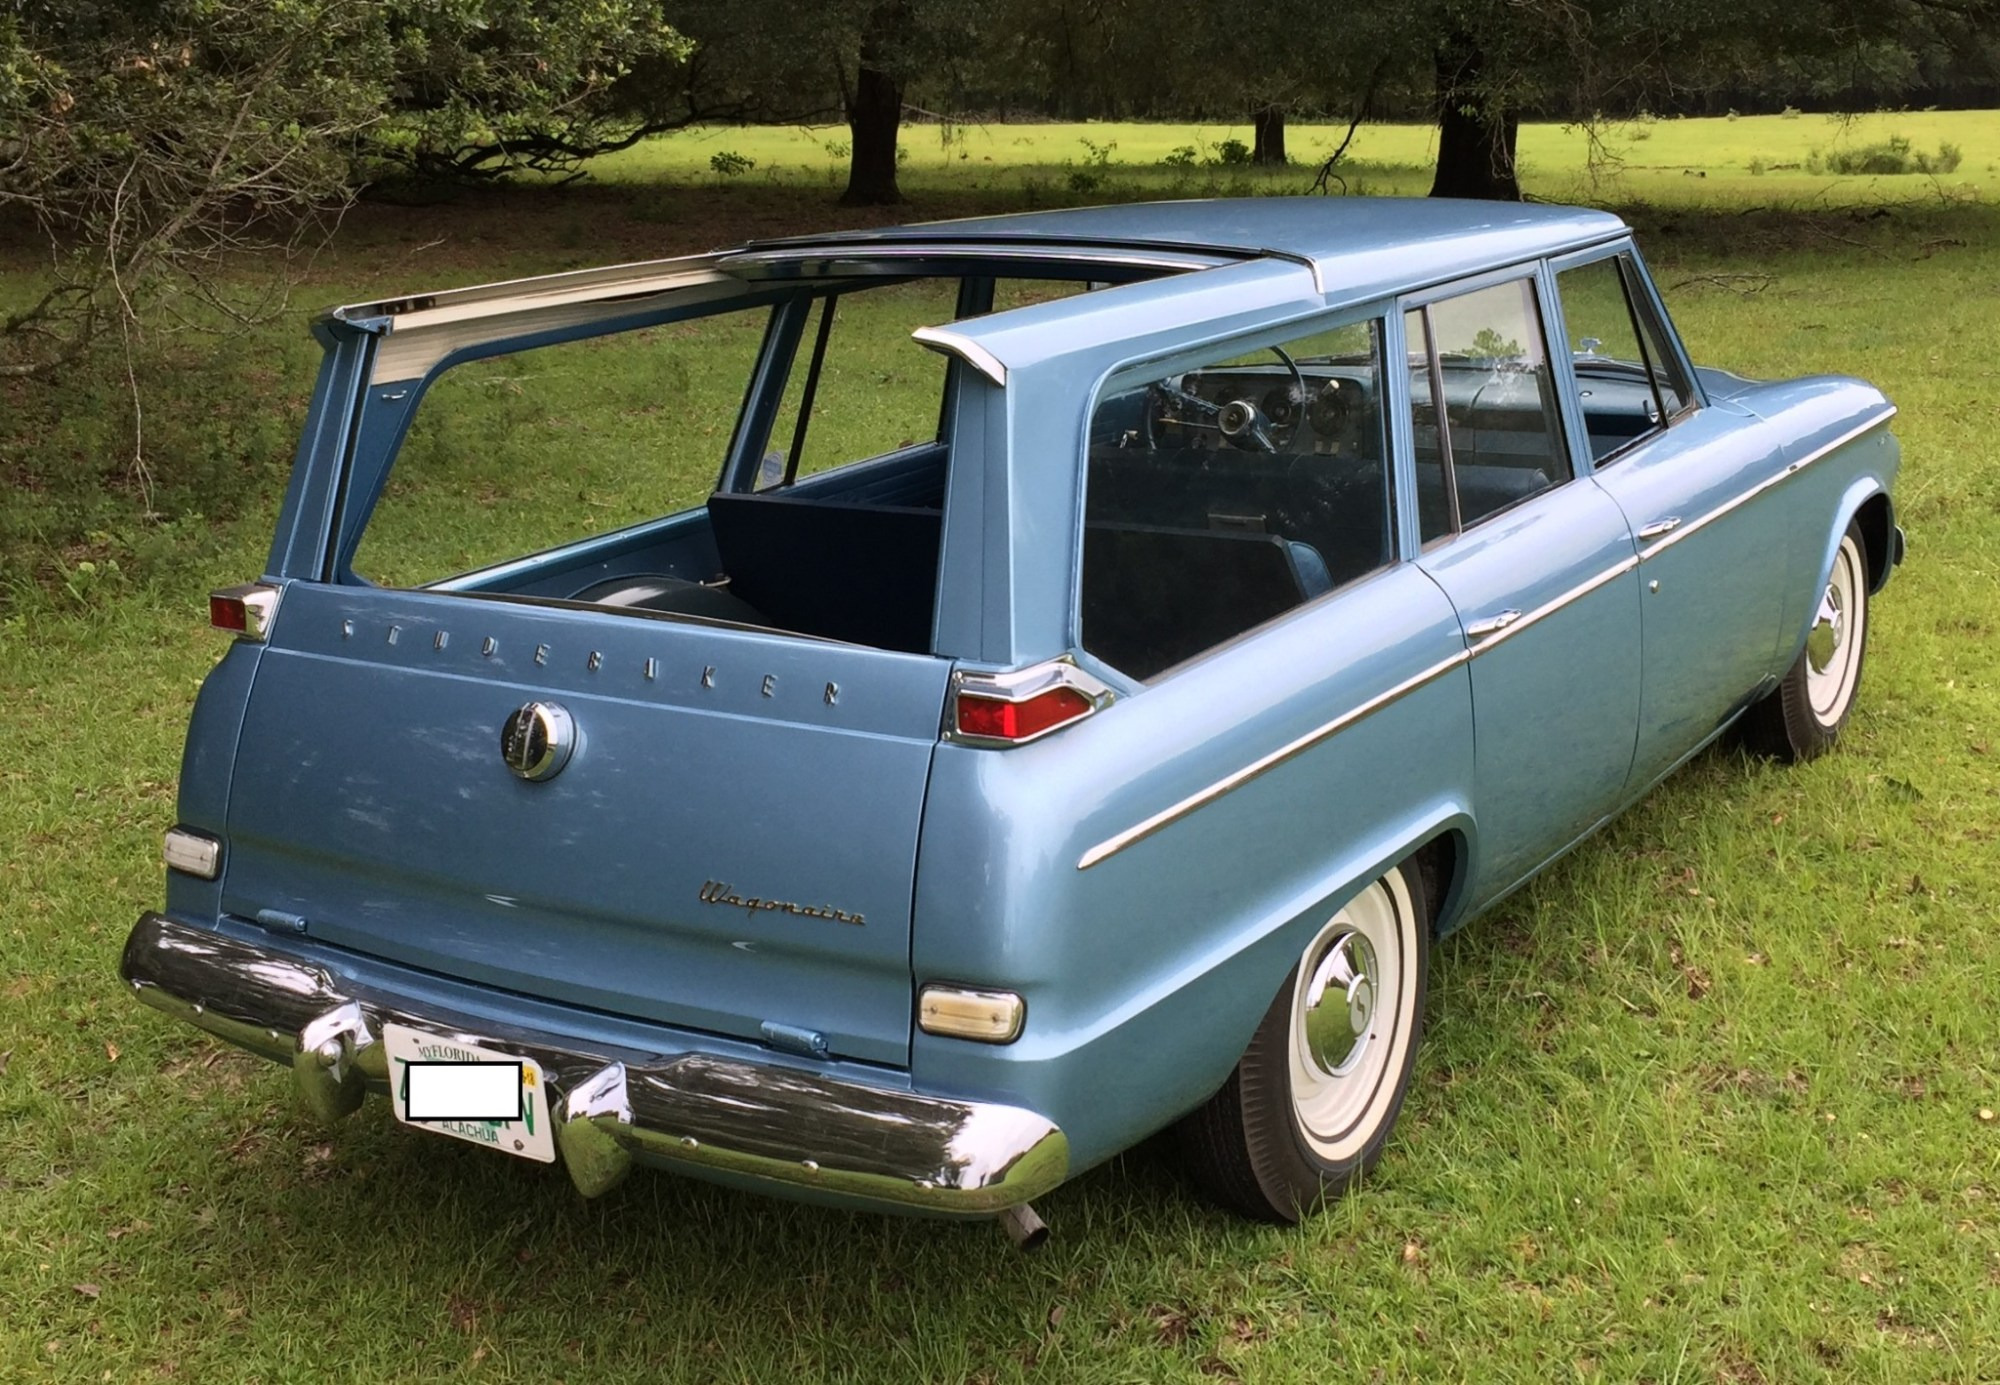 hight resolution of 1963 studebaker wagonaire for sale on bat auctions sold for 15 765 on august 9 2018 lot 11 507 bring a trailer